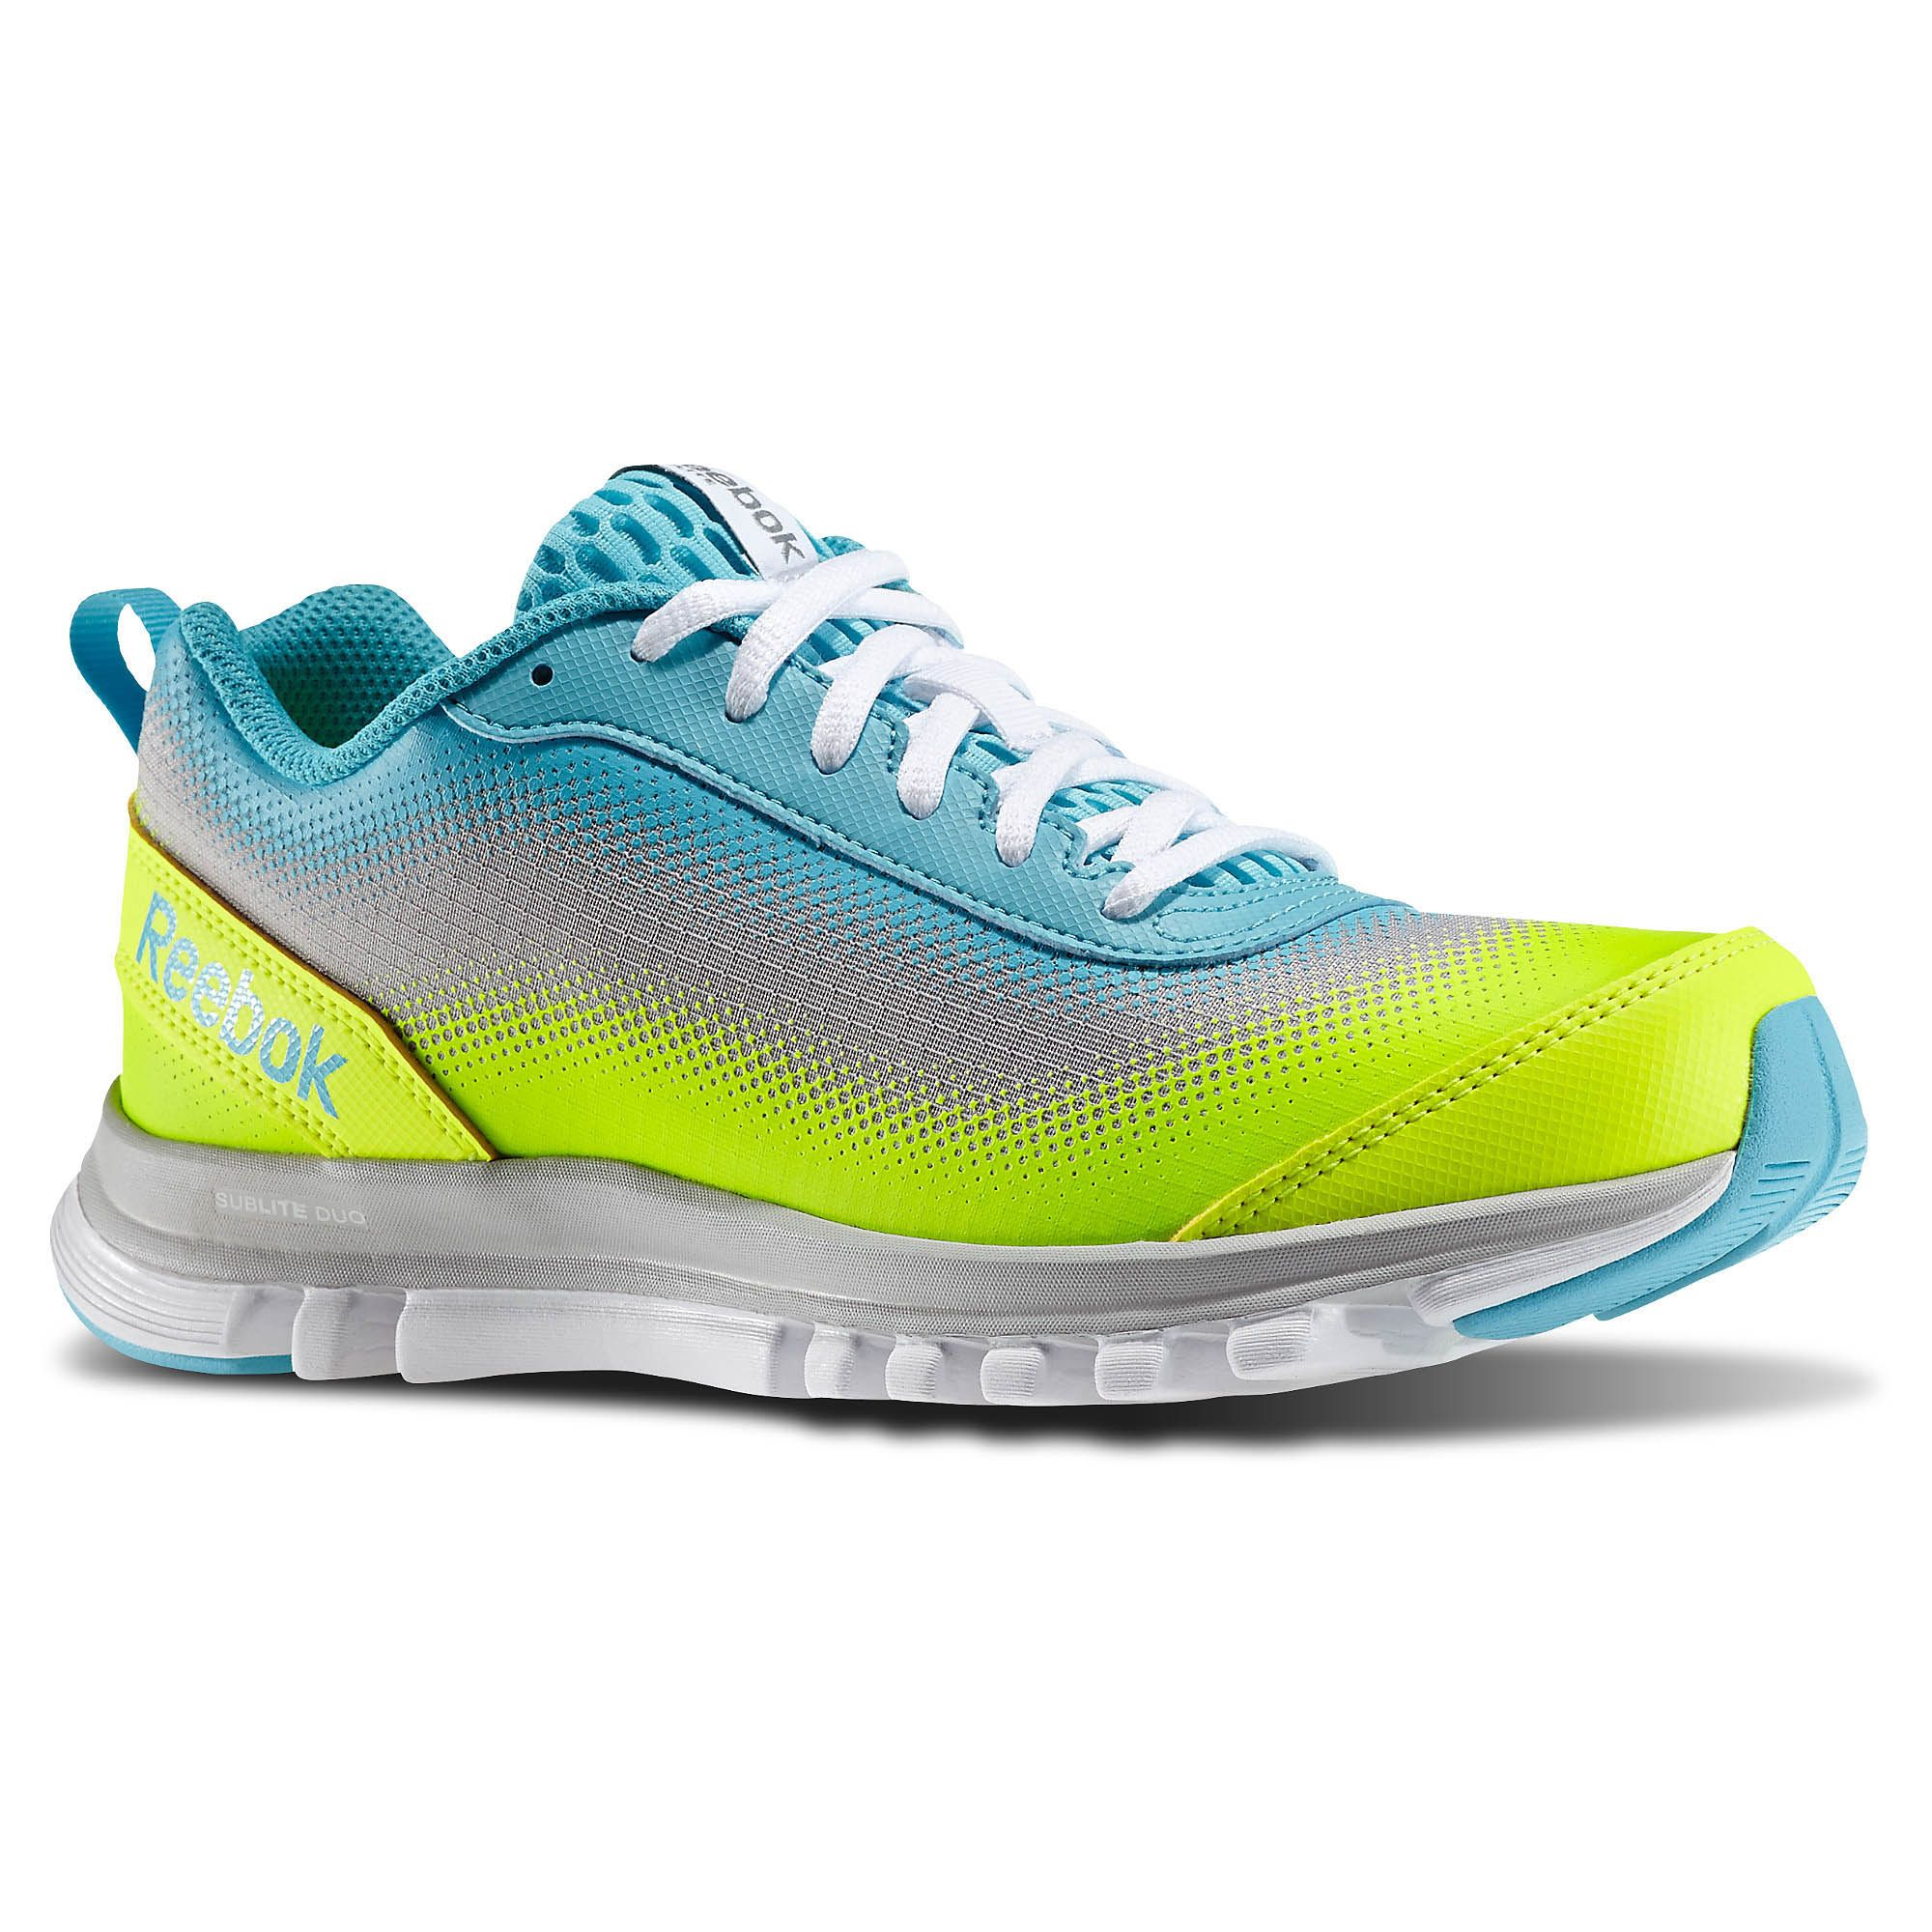 Reebok-running-shoes-and-sportsshoes-for-women (15)